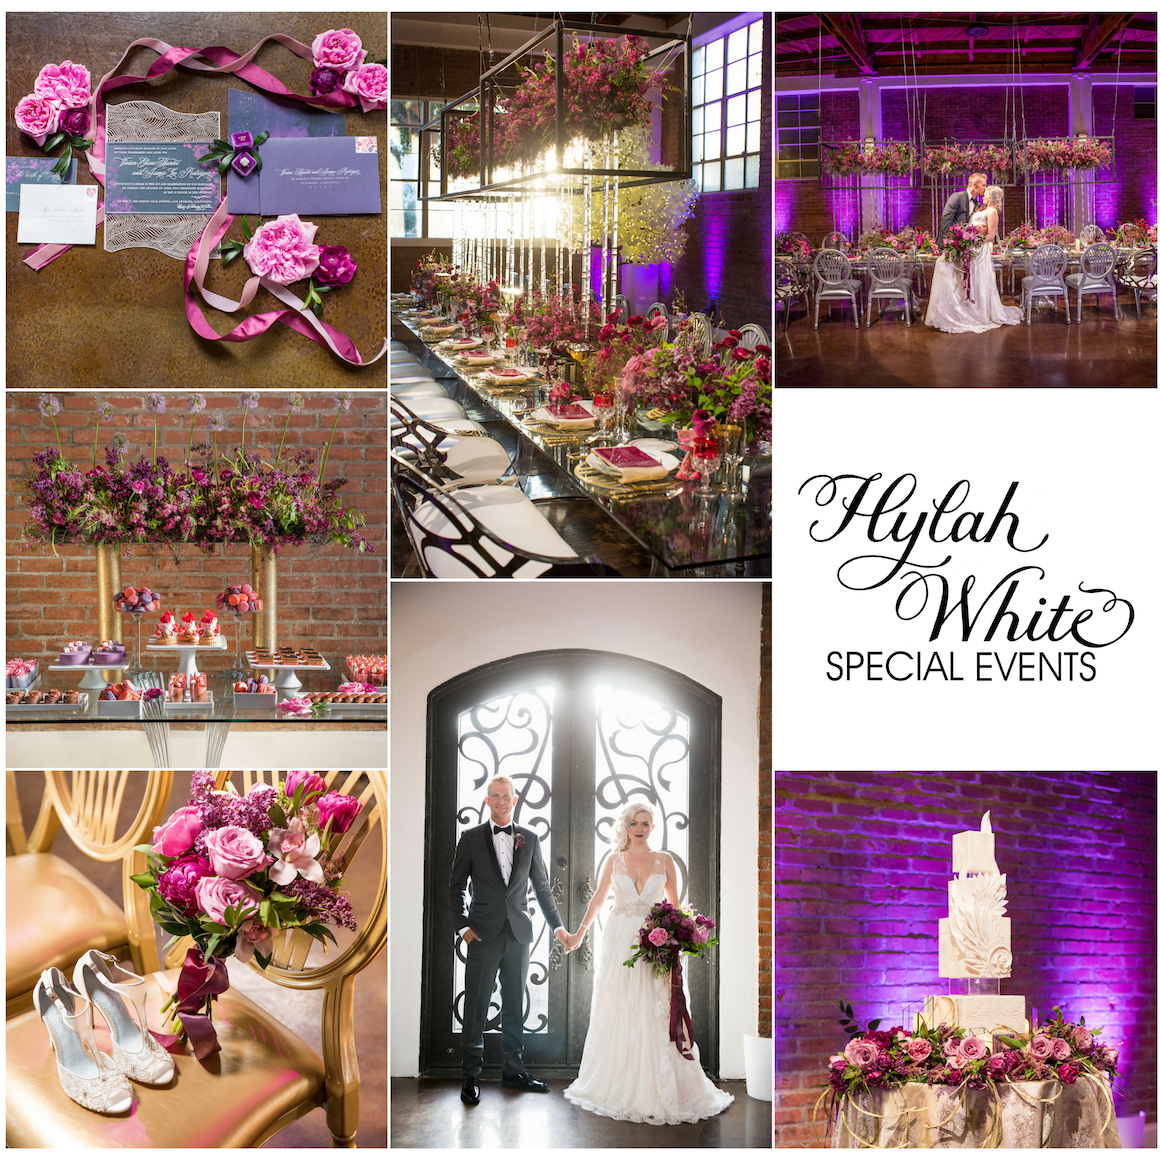 Love in Motion, Red Wedding, Pink Wedding, Shawna Yamamoto, Duke Images, At the P, Burgundy Wedding, Purple Wedding, Wedding Flowers, Wedding Shoes, Bella Belle Shoes, Borrowed Blu, Jasmin Michelle Designs, Bottega Louie, 204 Events, RMINE, The Butterend, Jasmin Michelle Designs